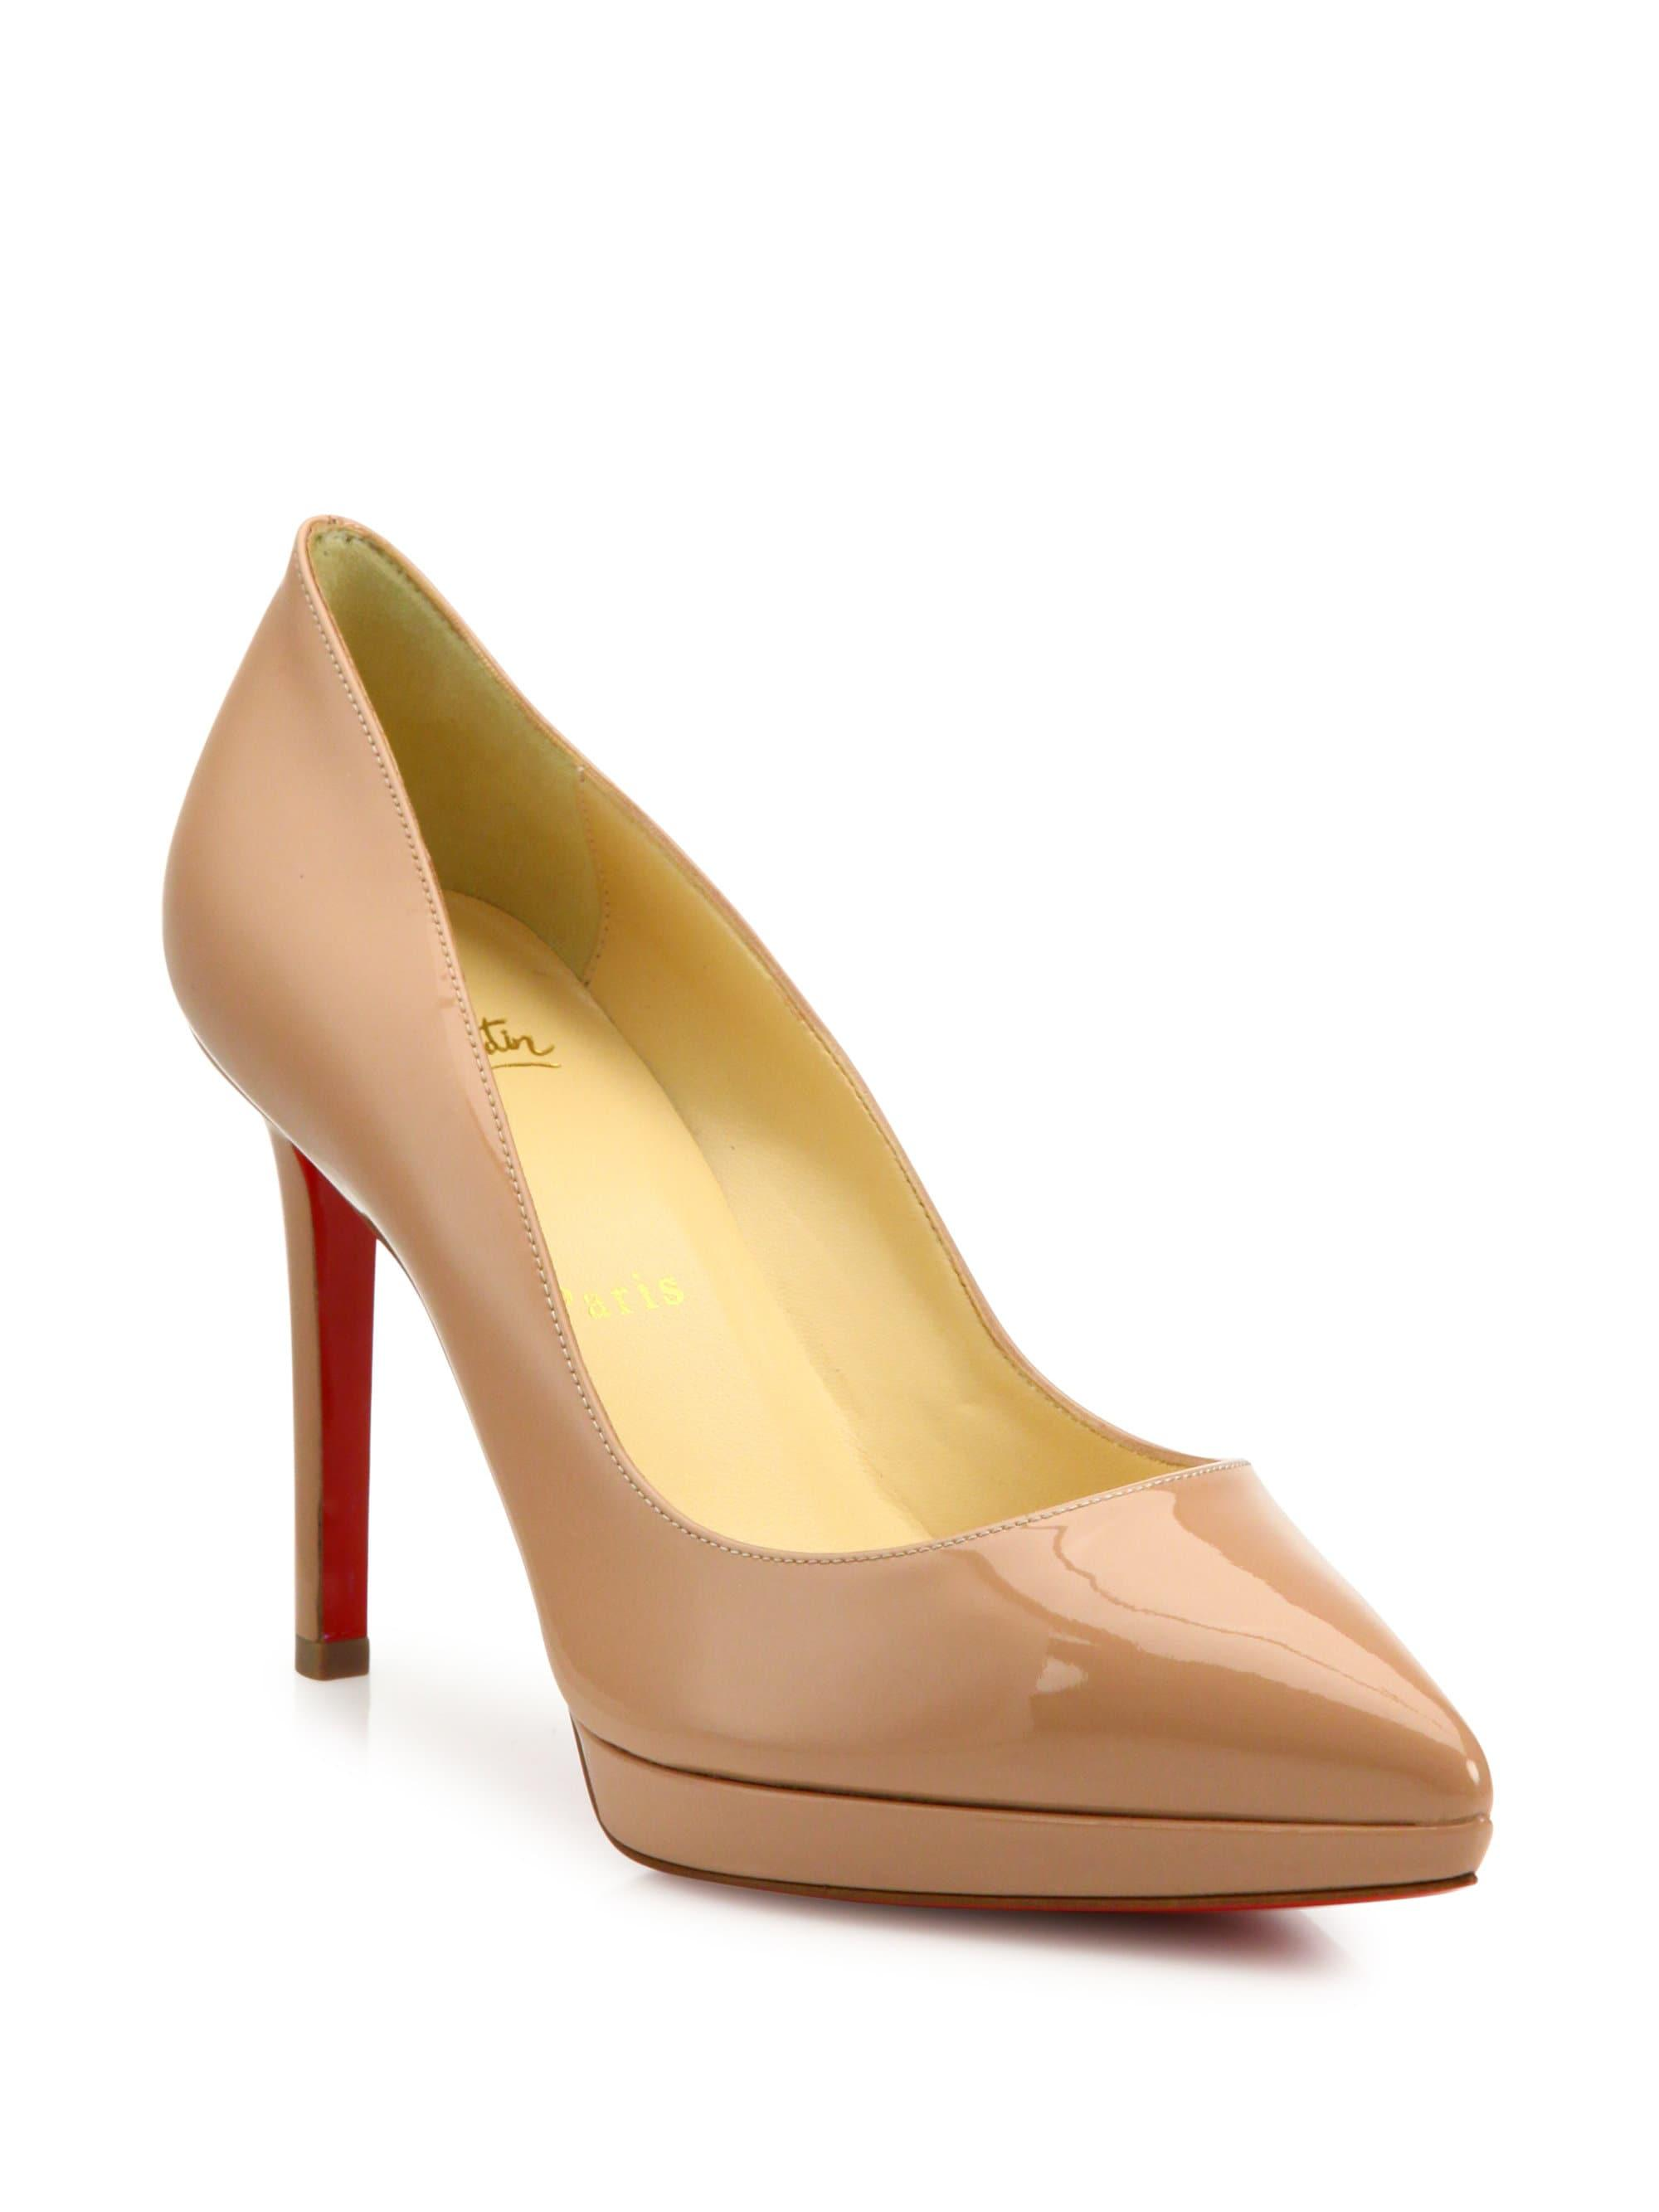 Christian Louboutin Women s Pigalle 100 Patent Leather Platform ... 7f353724fd